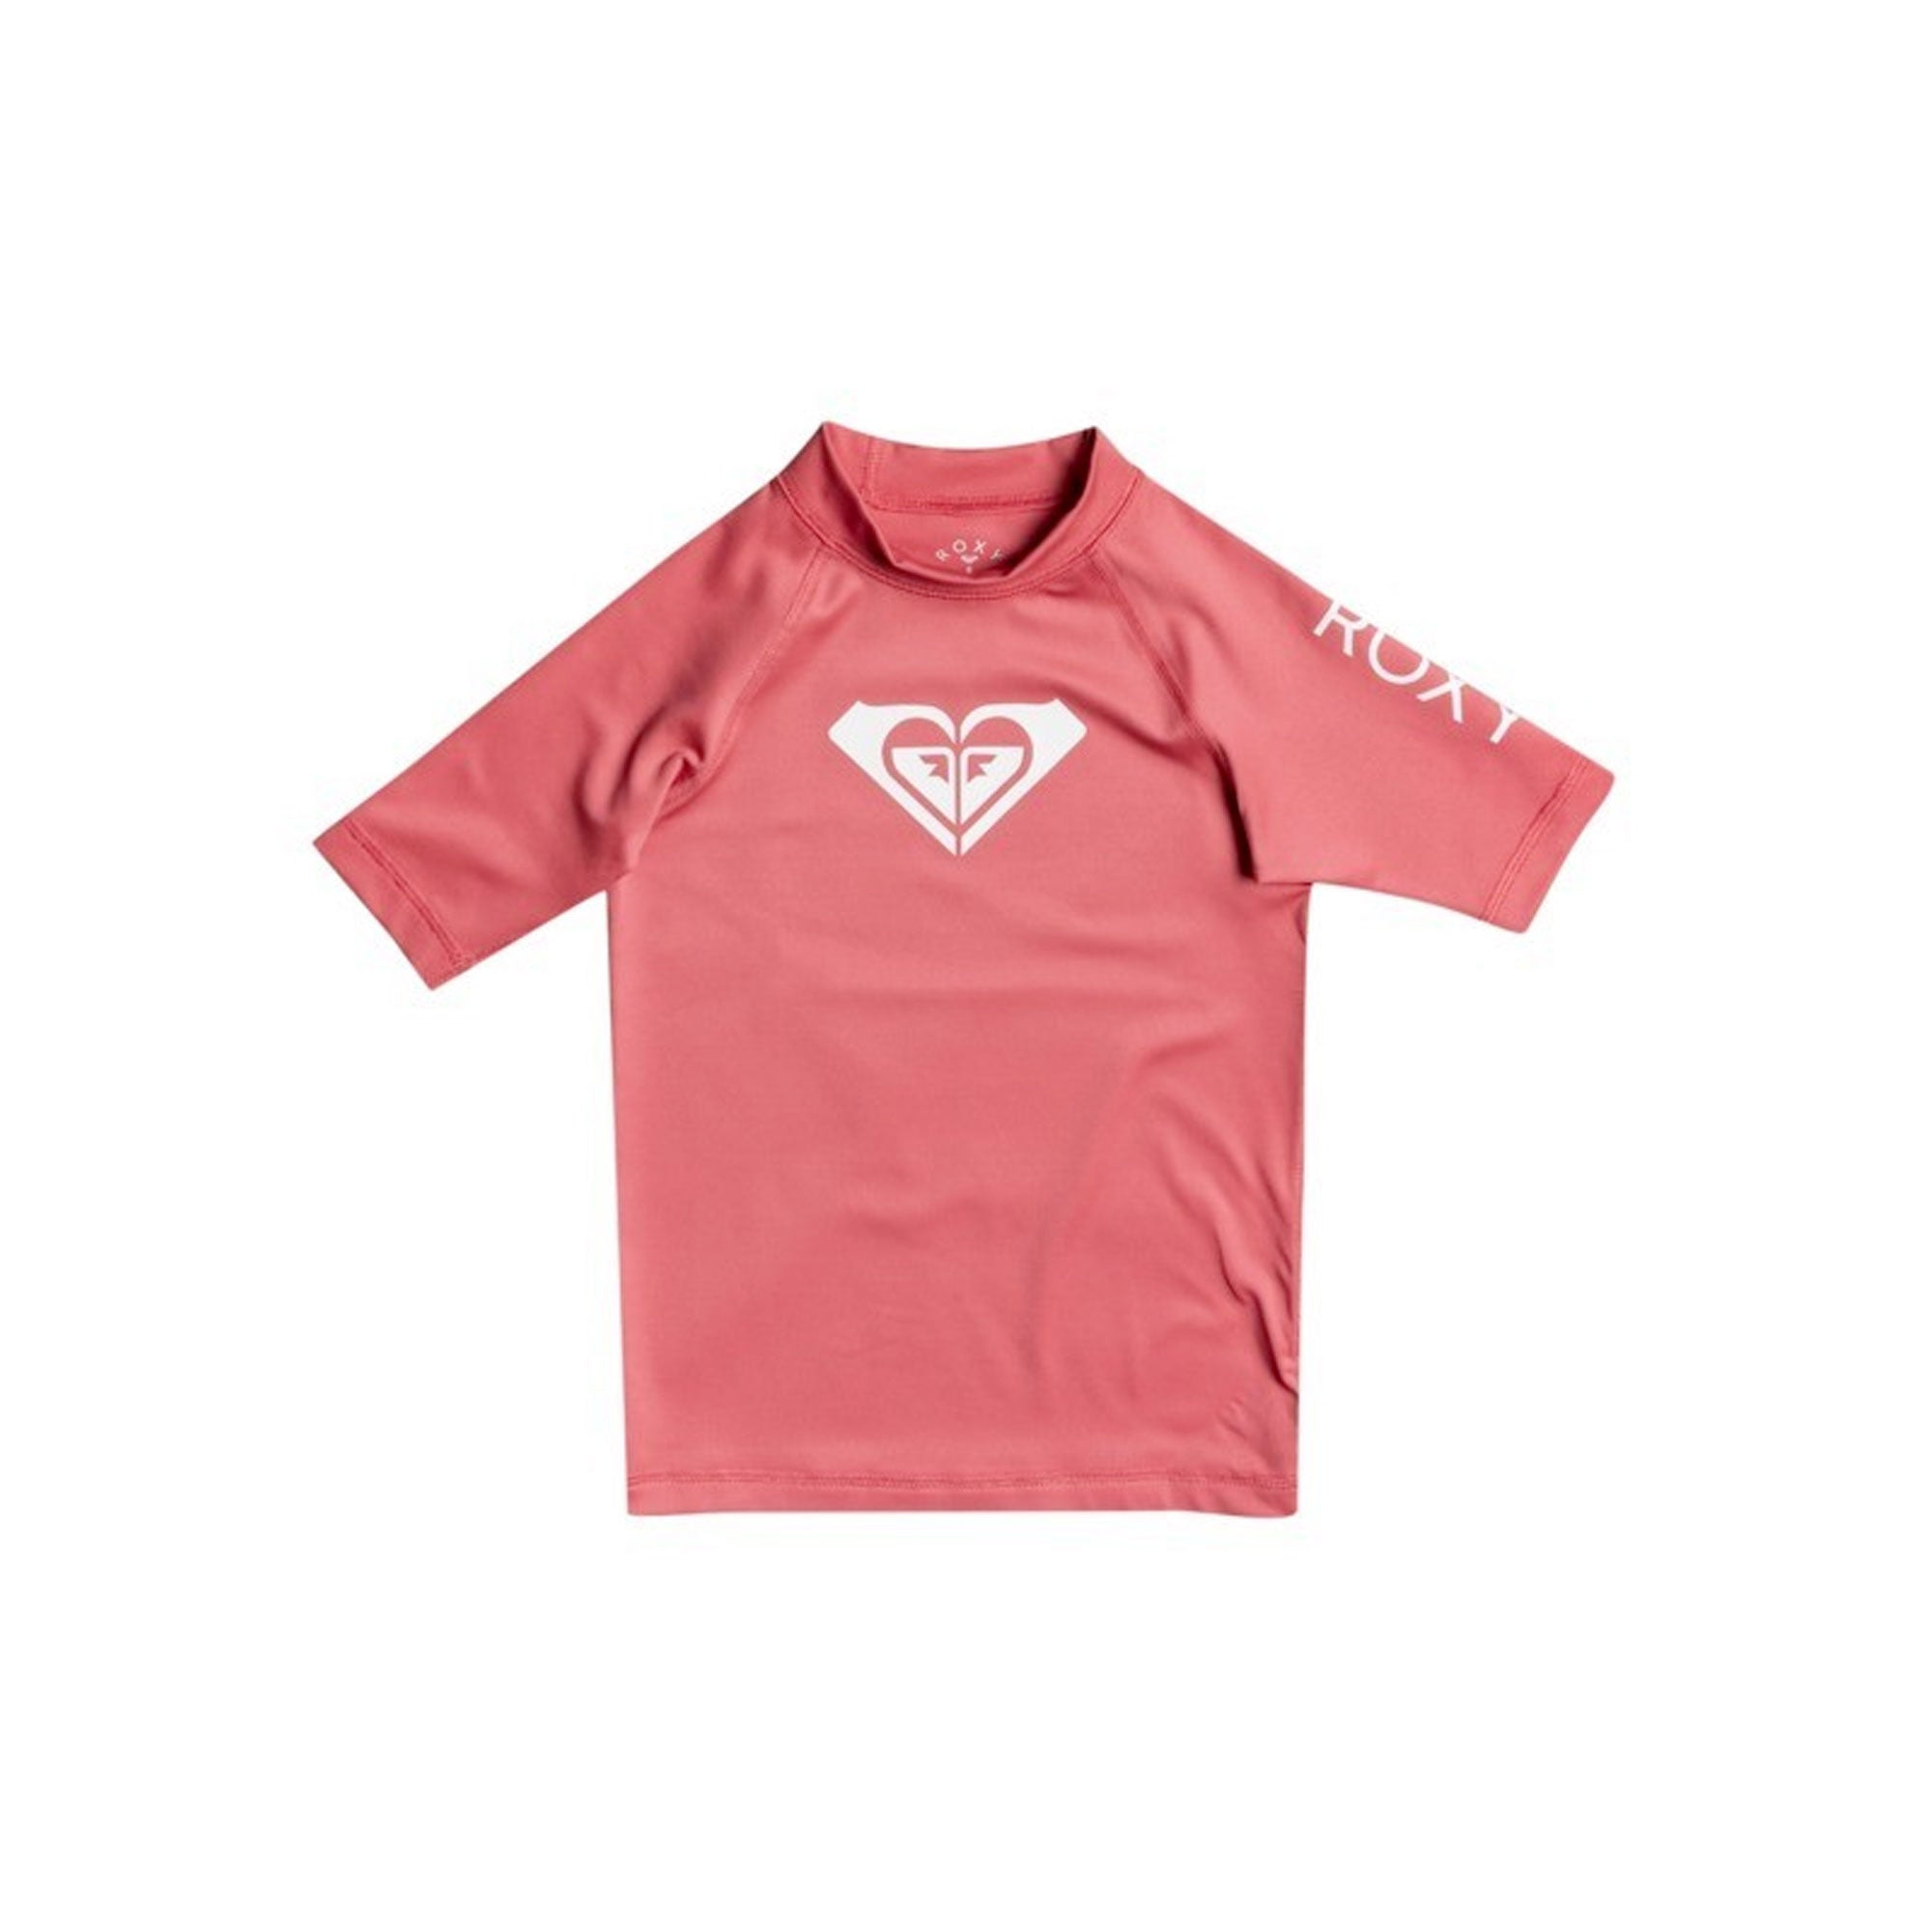 Roxy Whole Hearted Girl's S/S UPF 50 Rashguard